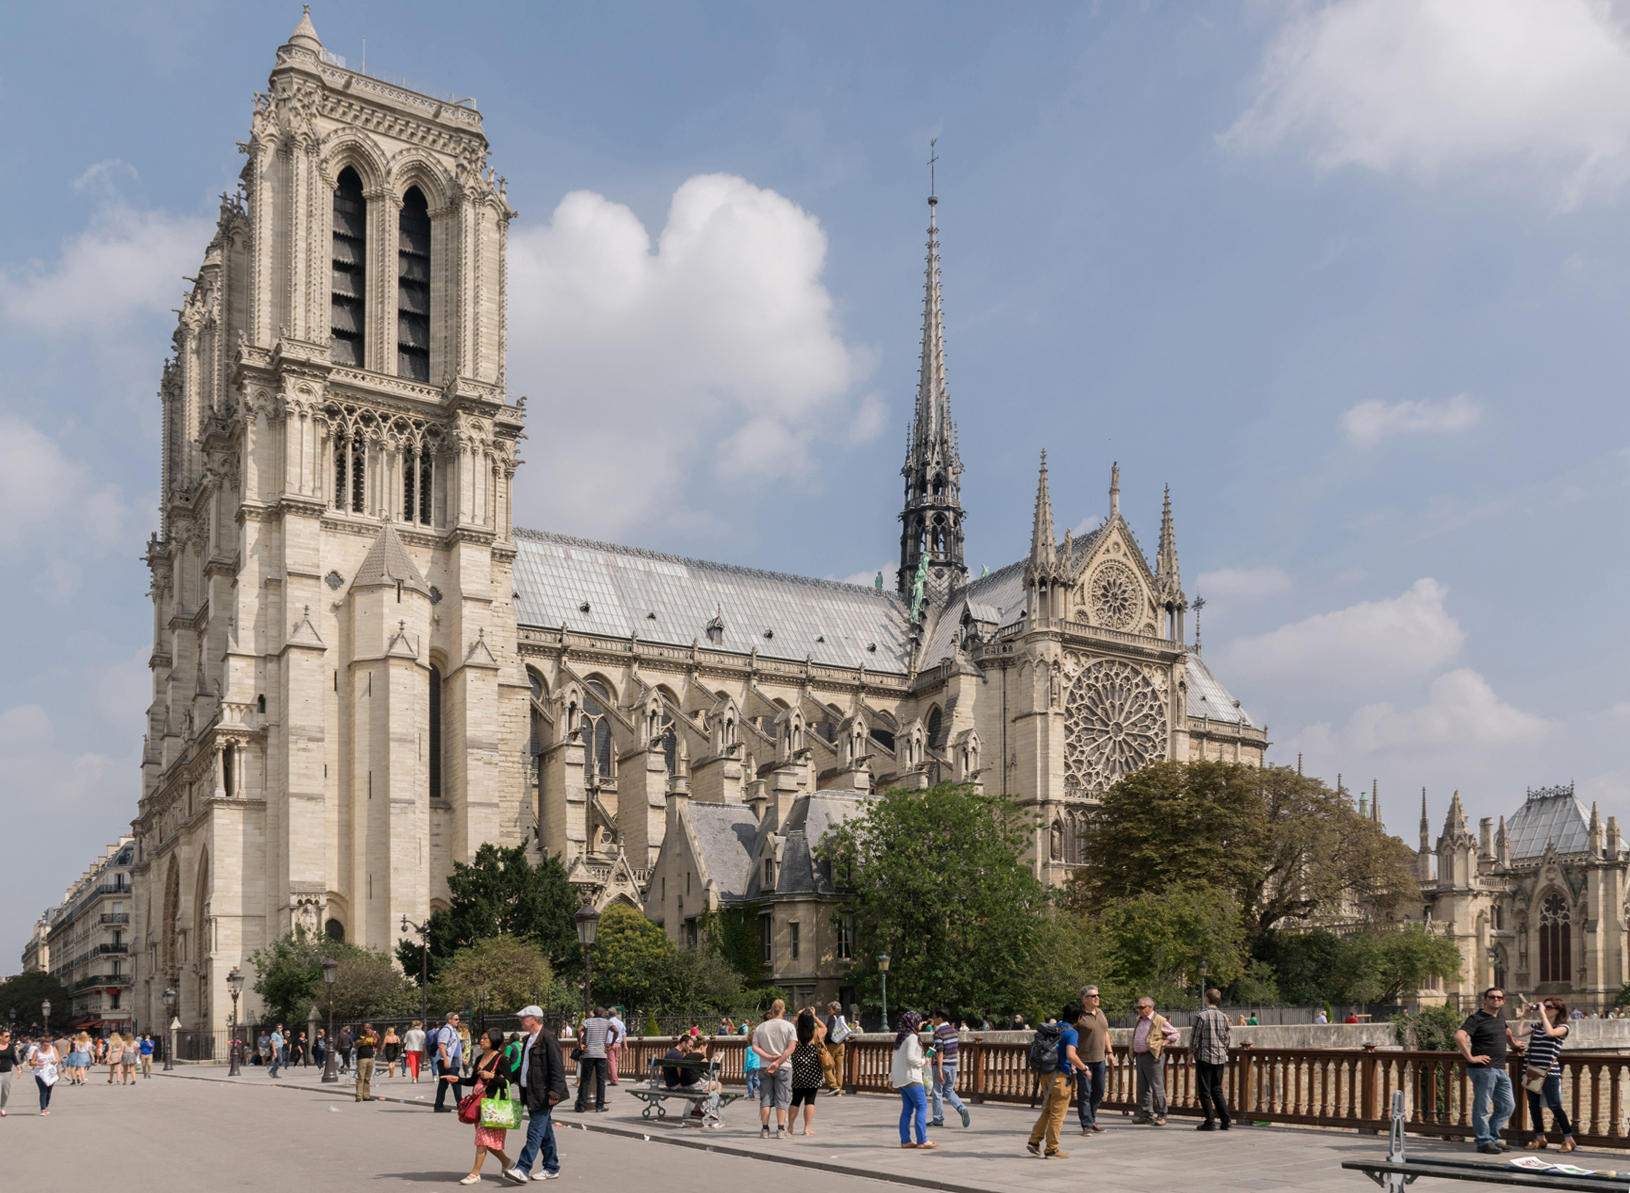 Notre Dame de Paris also known as Notre-Dame Cathedral or simply Notre-Dame